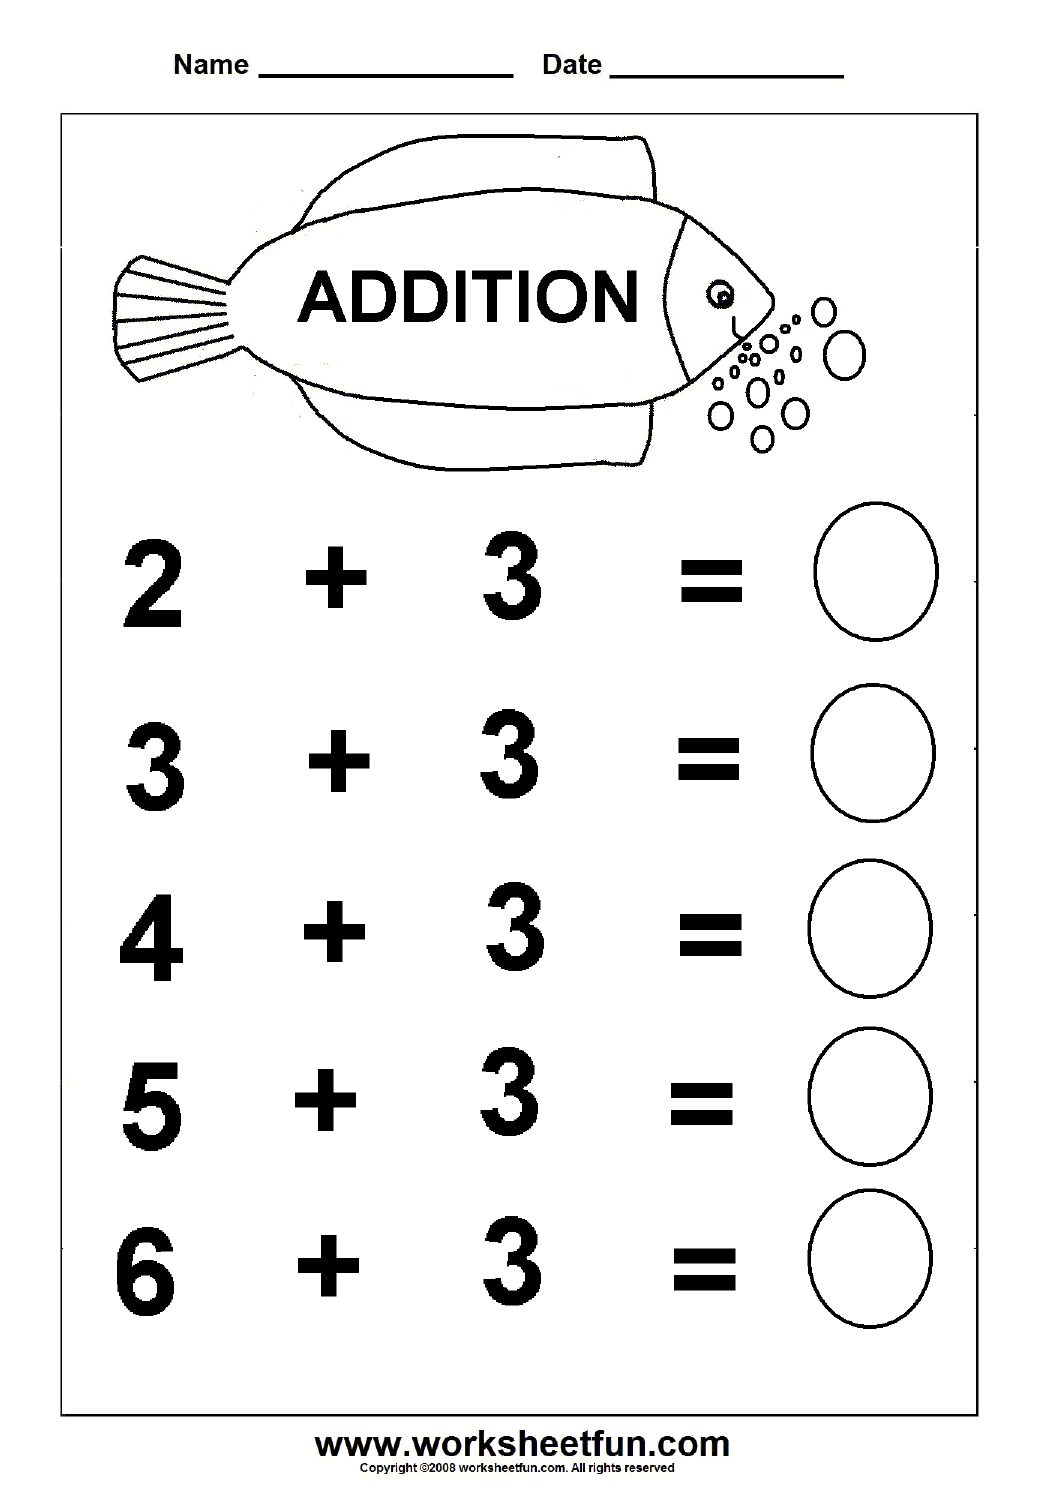 Beginner Addition 6 Kindergarten Addition Worksheets Free Printable Worksheets Worksheetfun